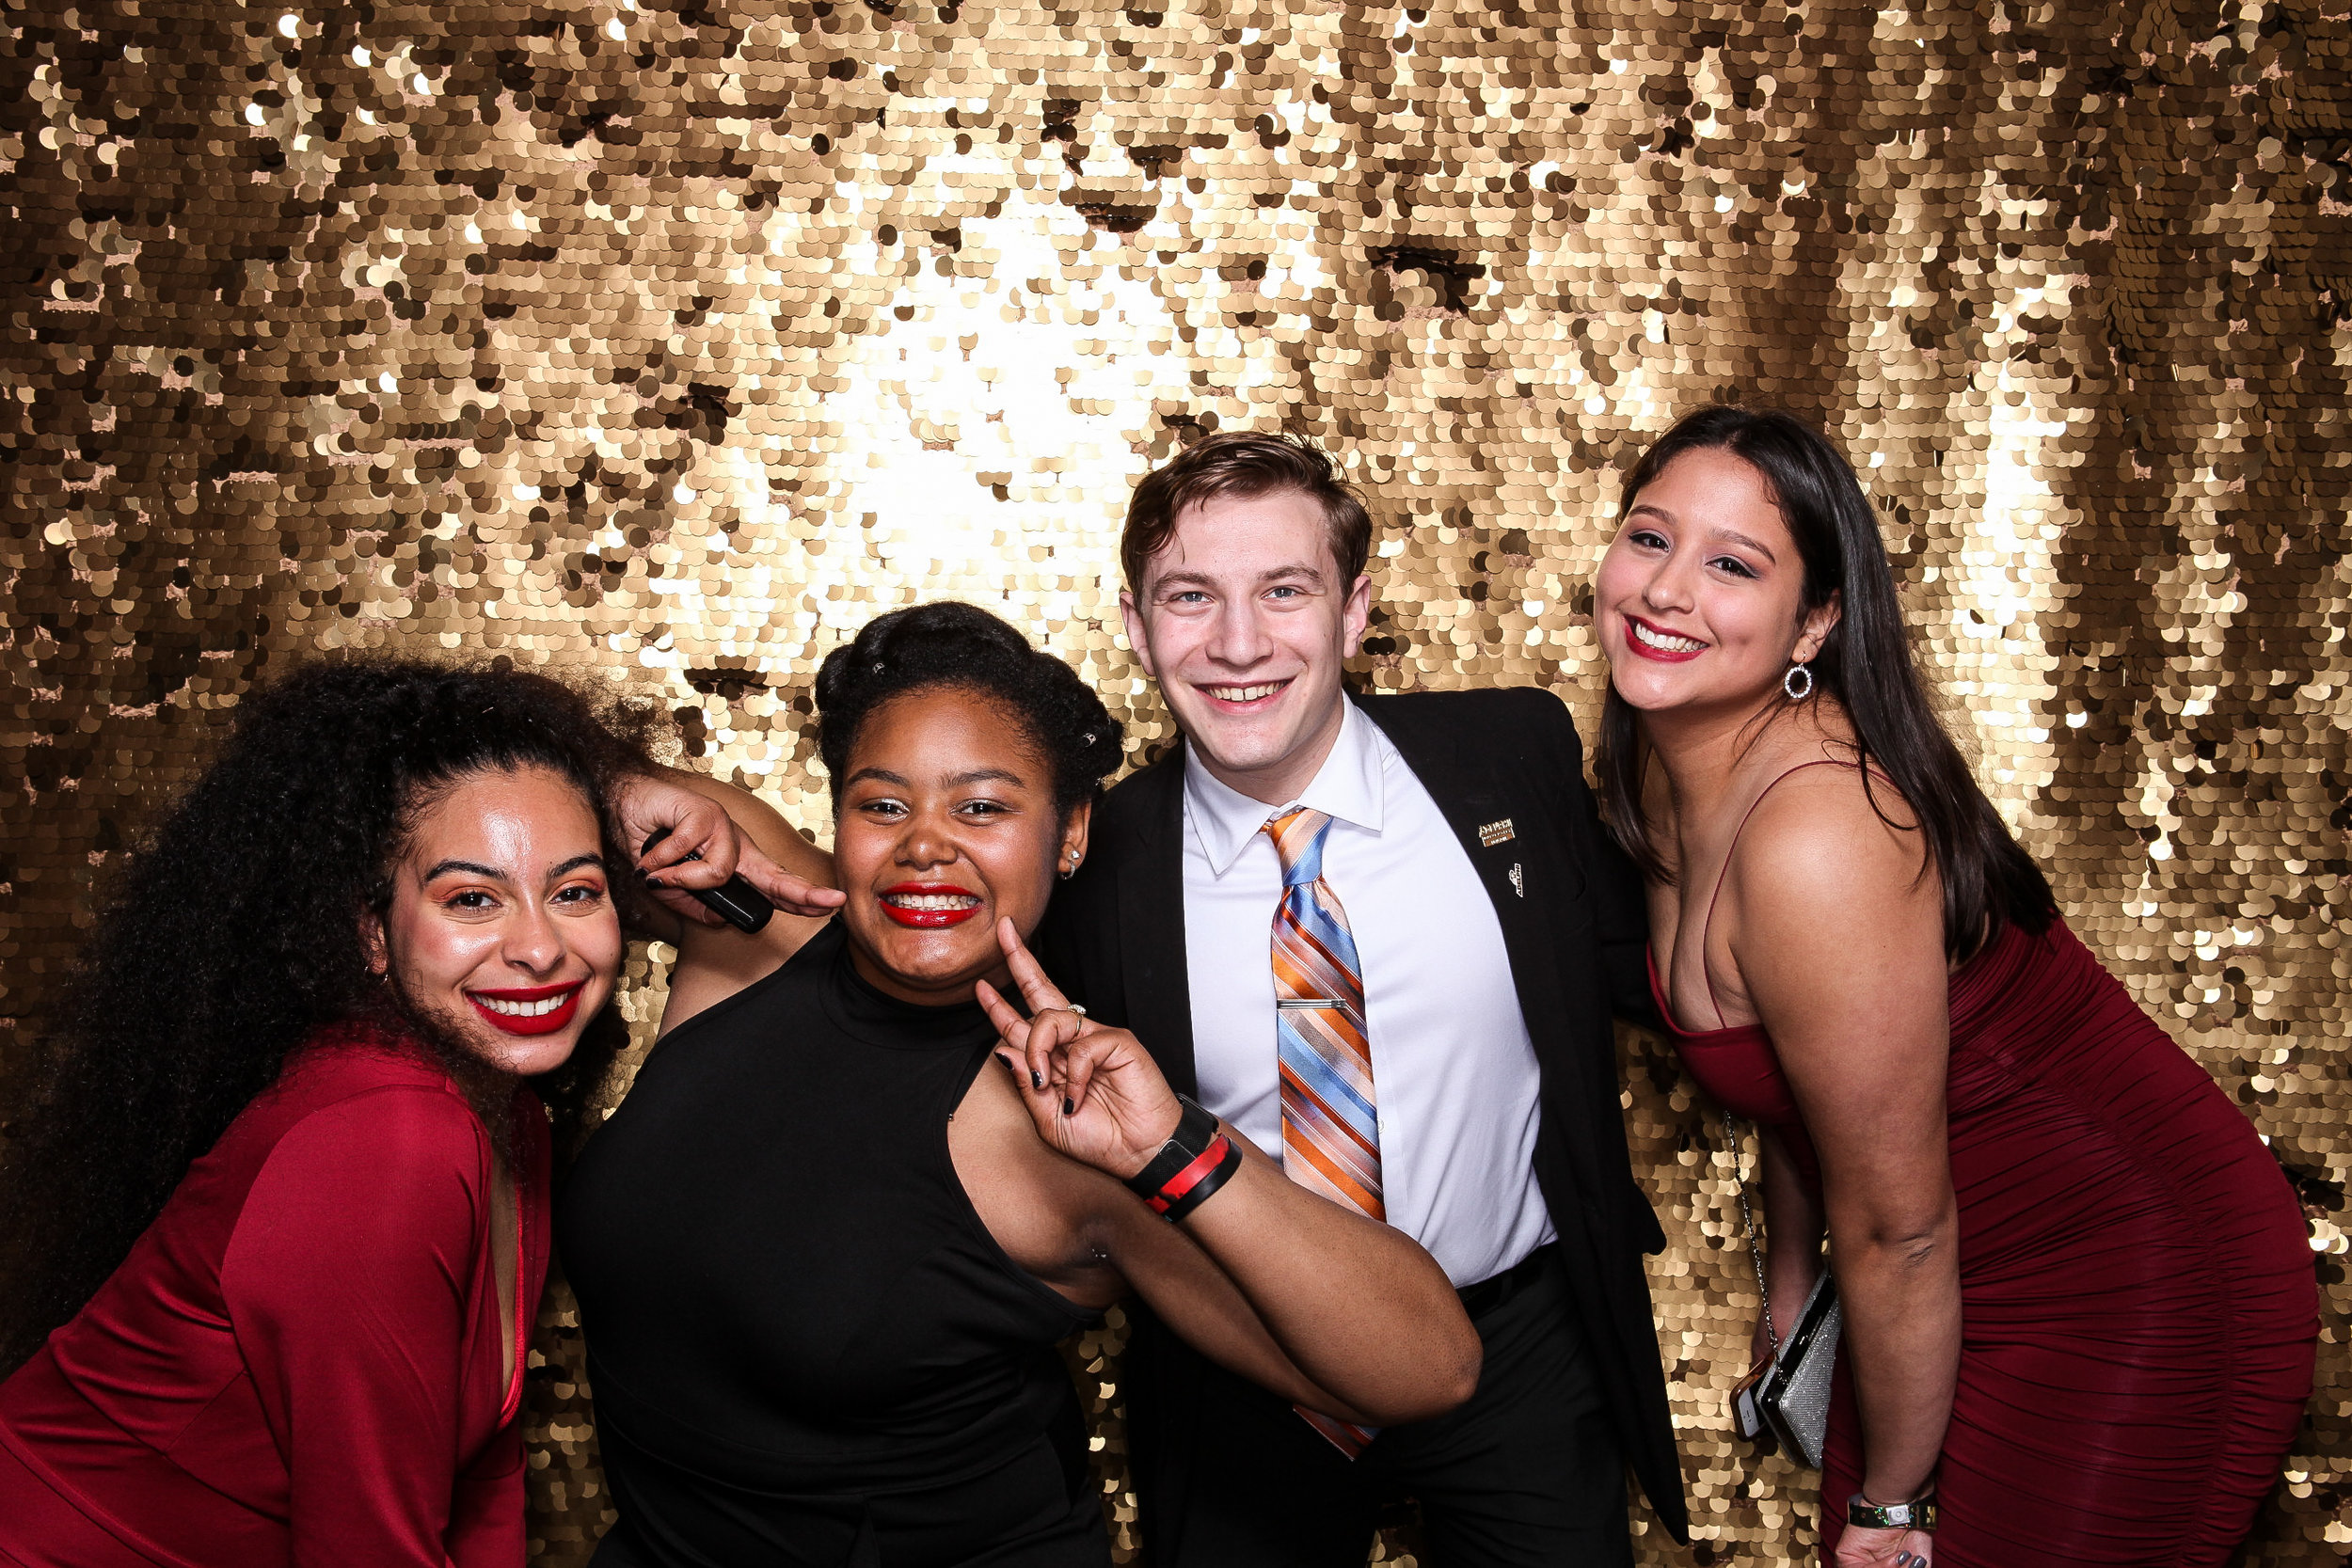 20190503_Adelphi_Senior_Formal-400.jpg